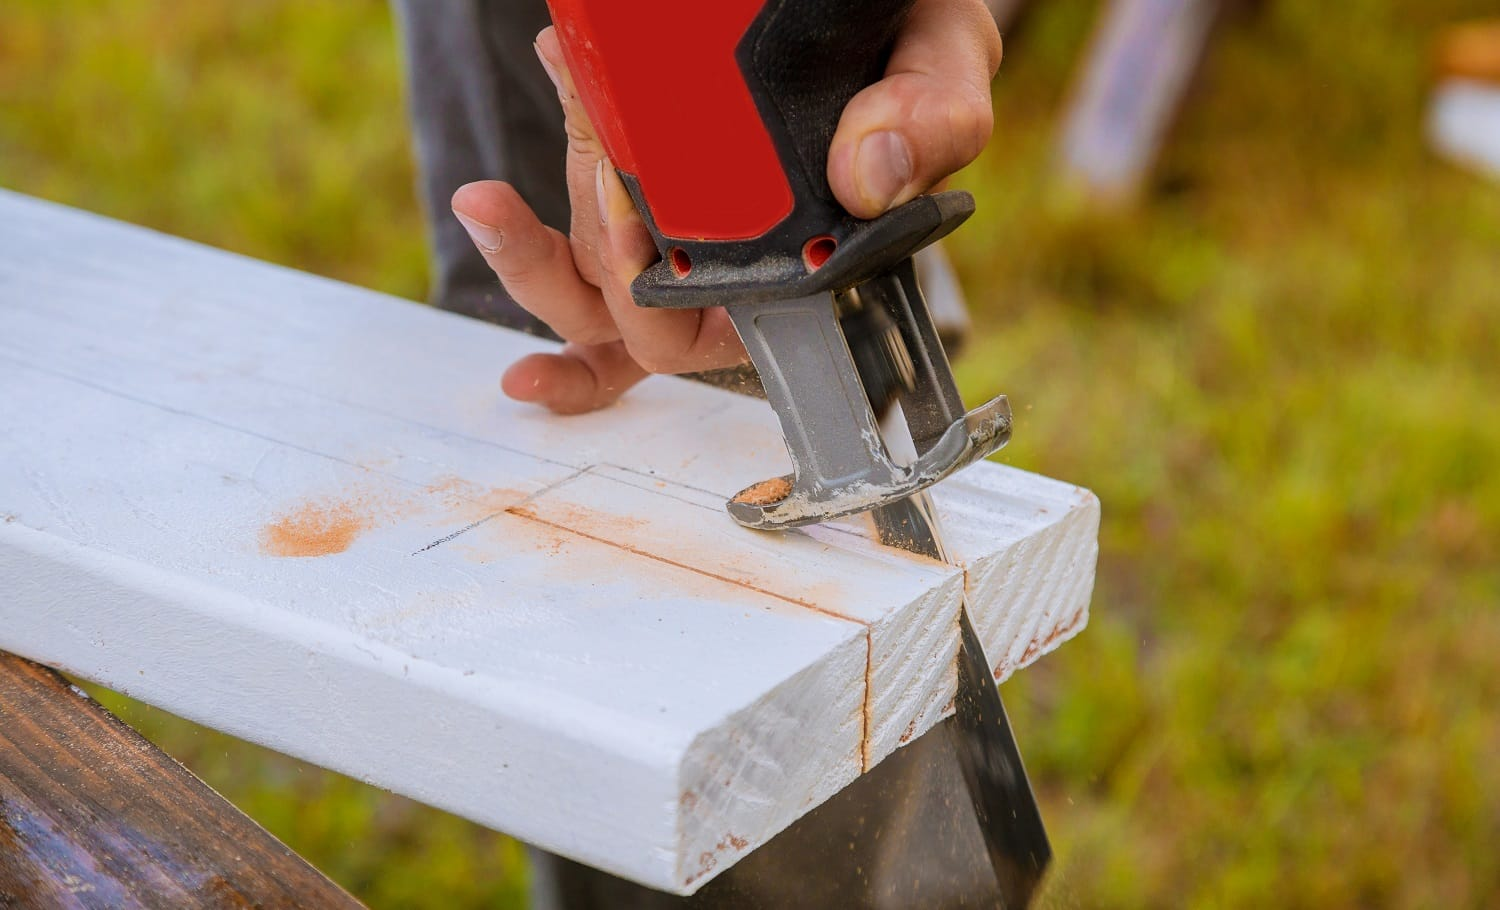 A man is cutting a board of wood with jigsaw detail of a cutting wooden board with saw dust.